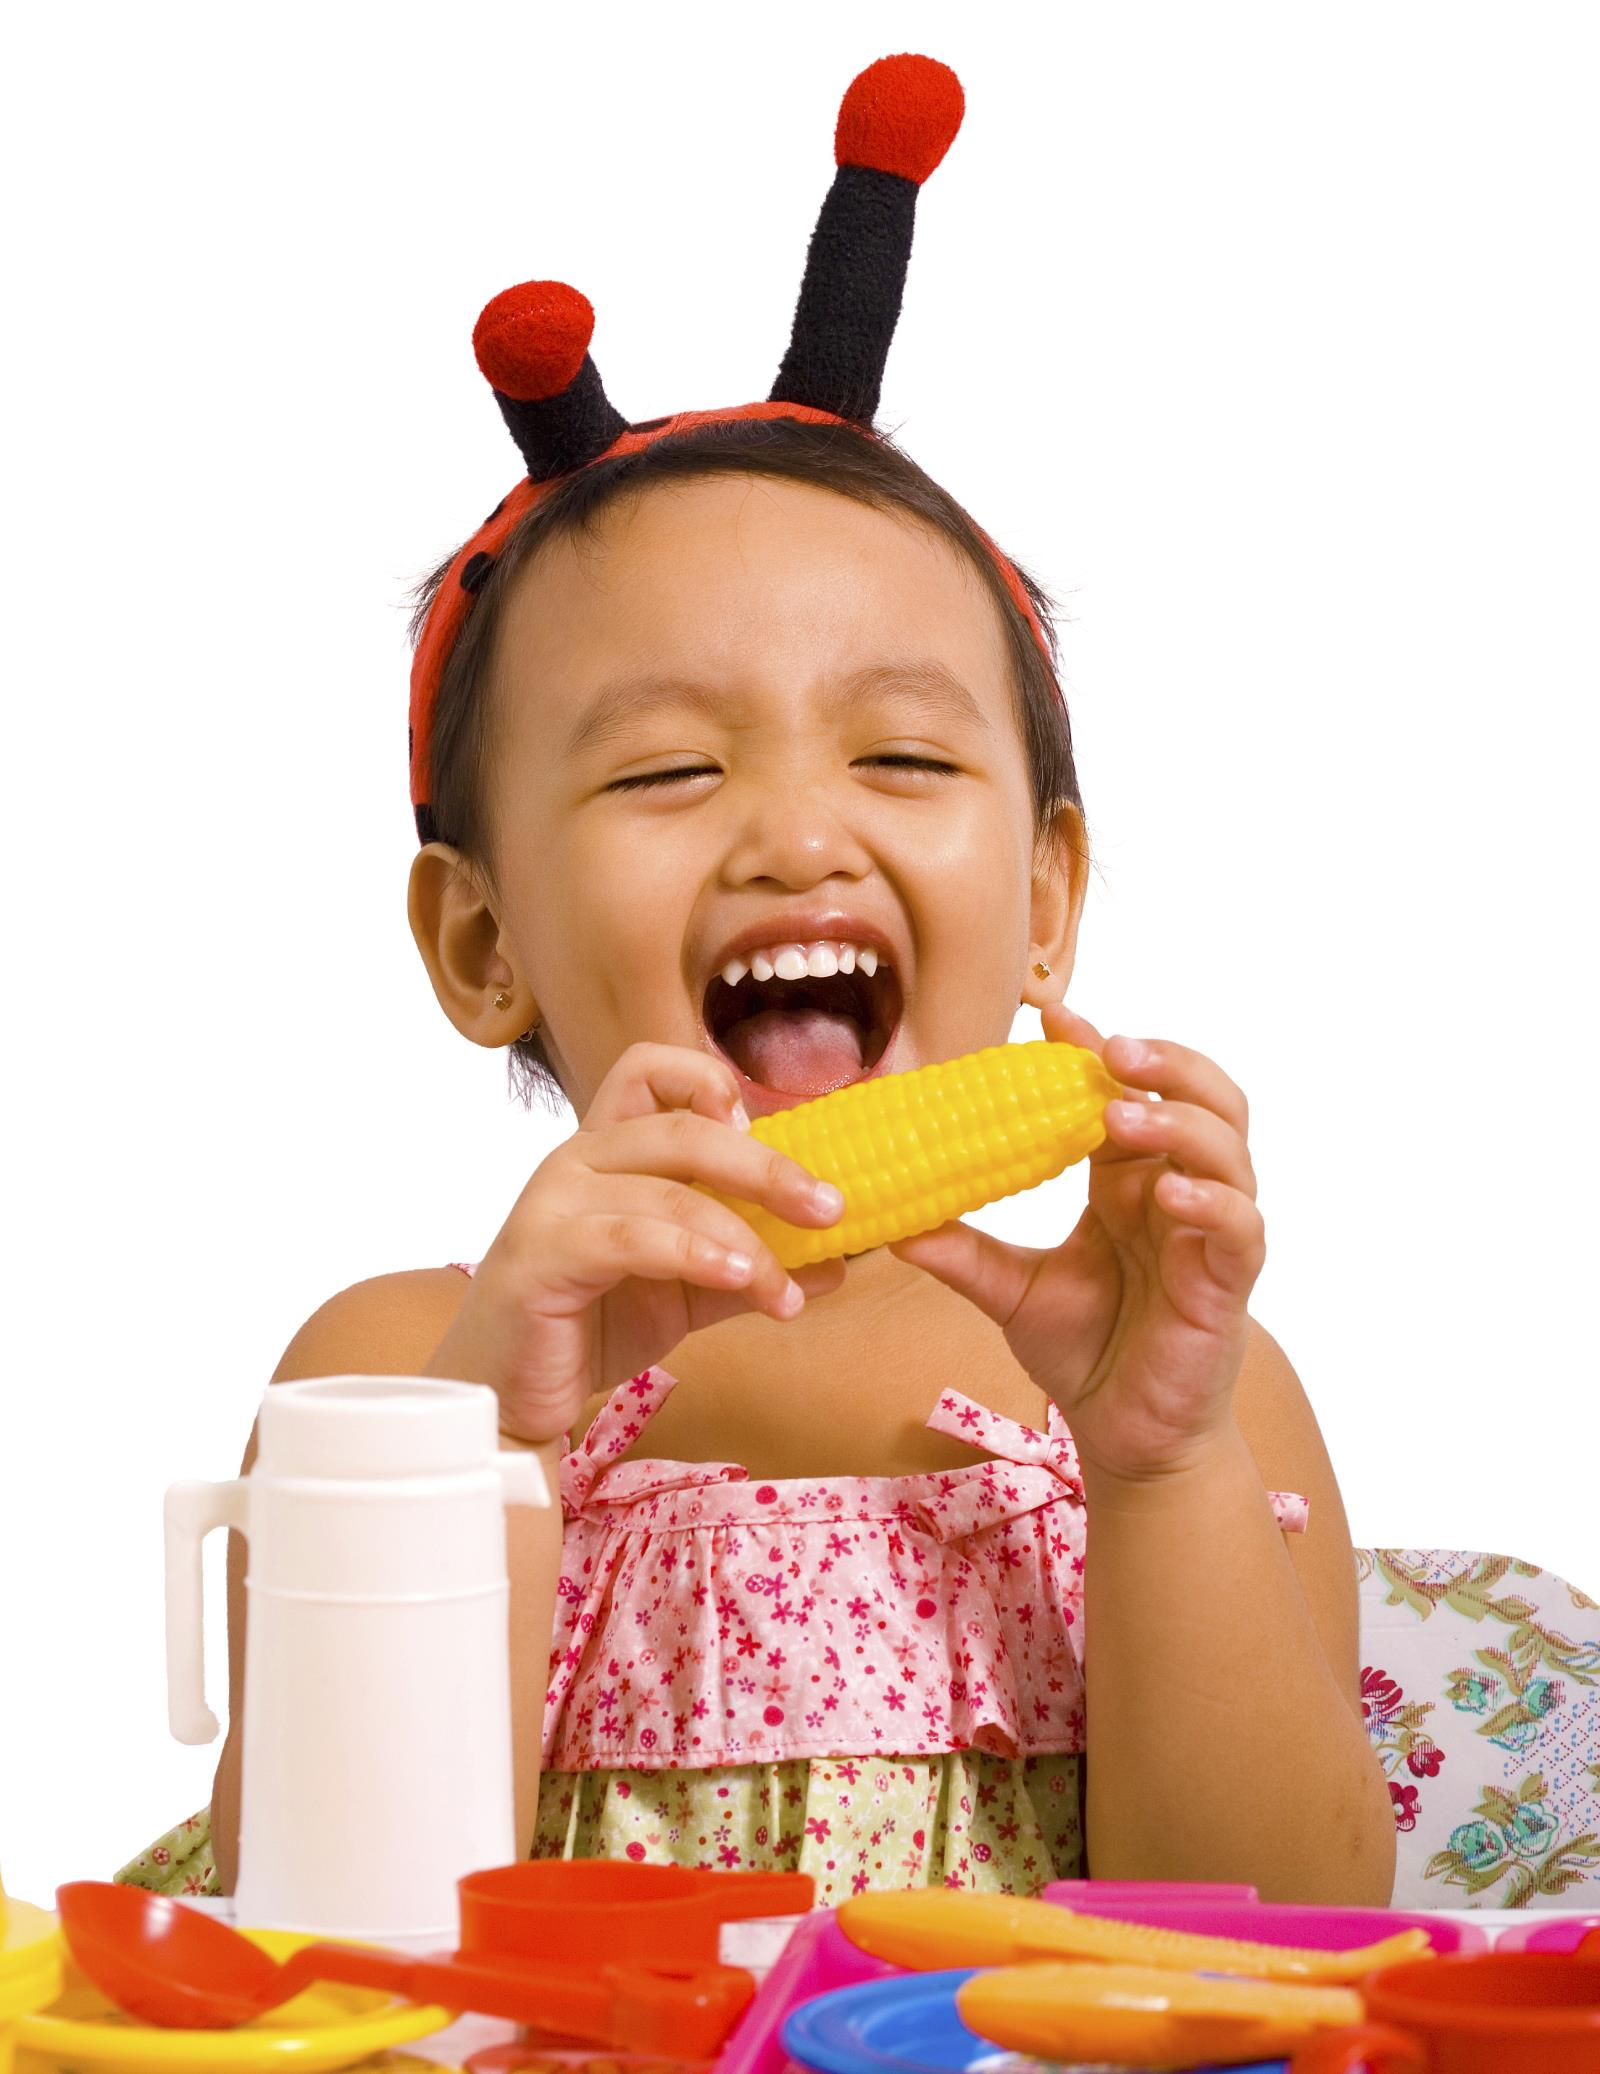 Little girl playing with toy food